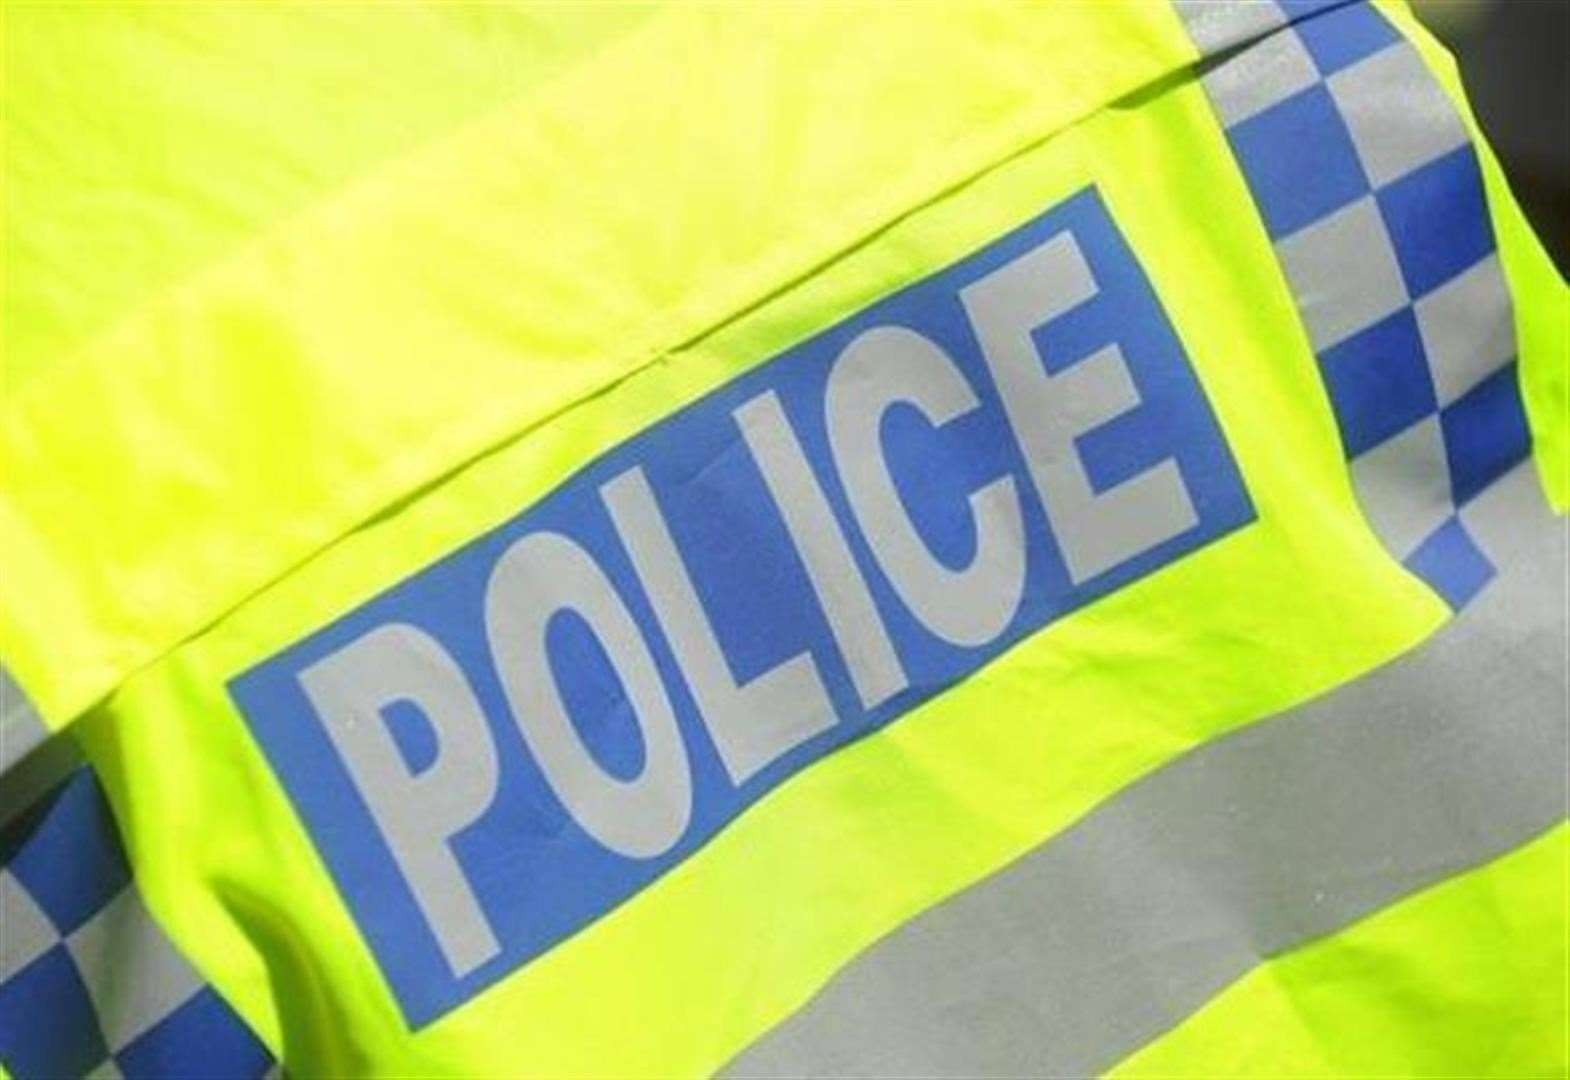 Police warning as road is closed